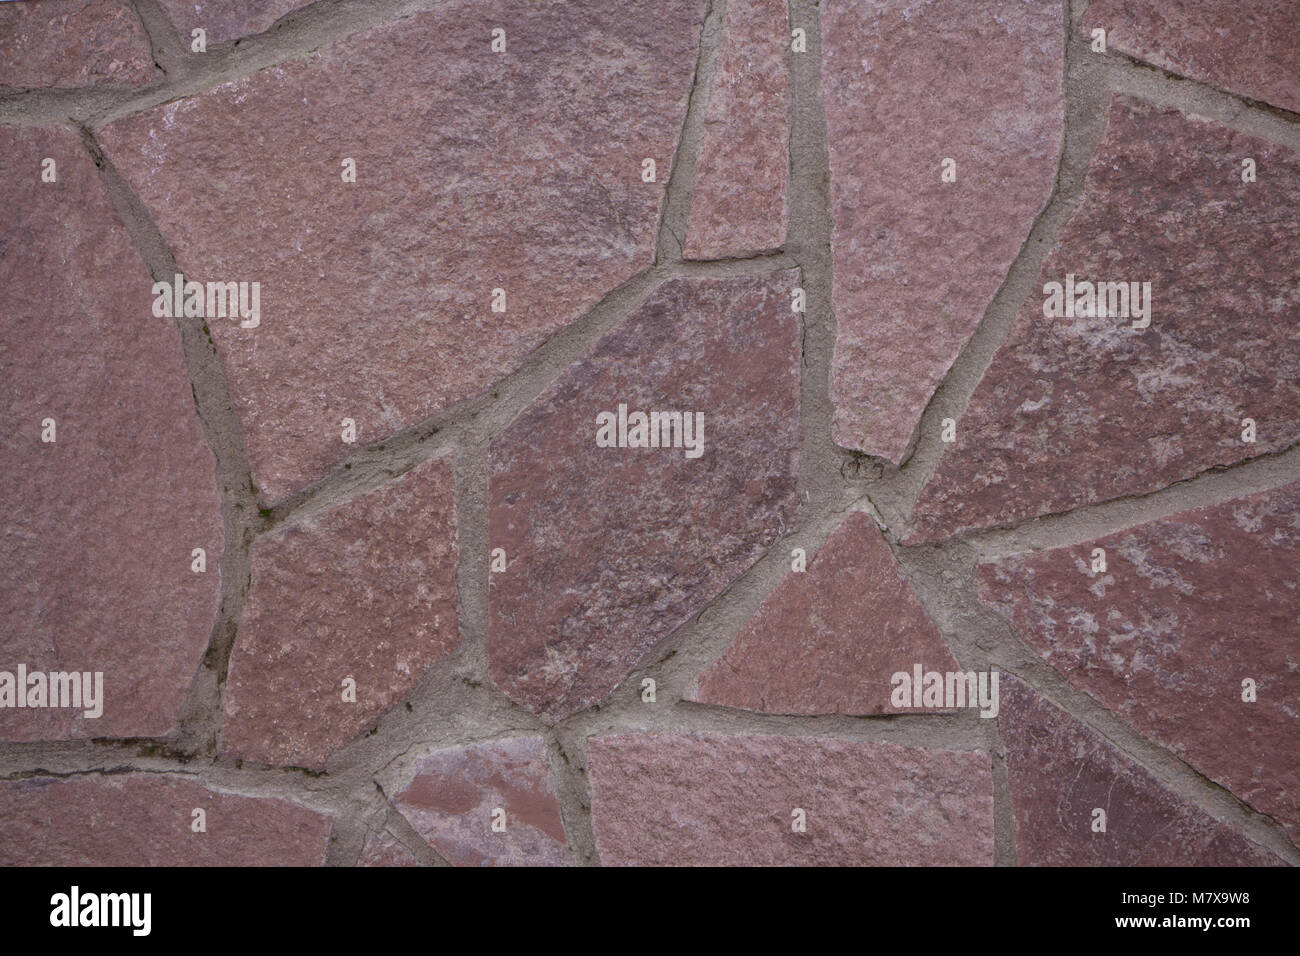 Wall stone mosaic texture for background with different rocks.Taken off the street in cloudy weather. - Stock Image